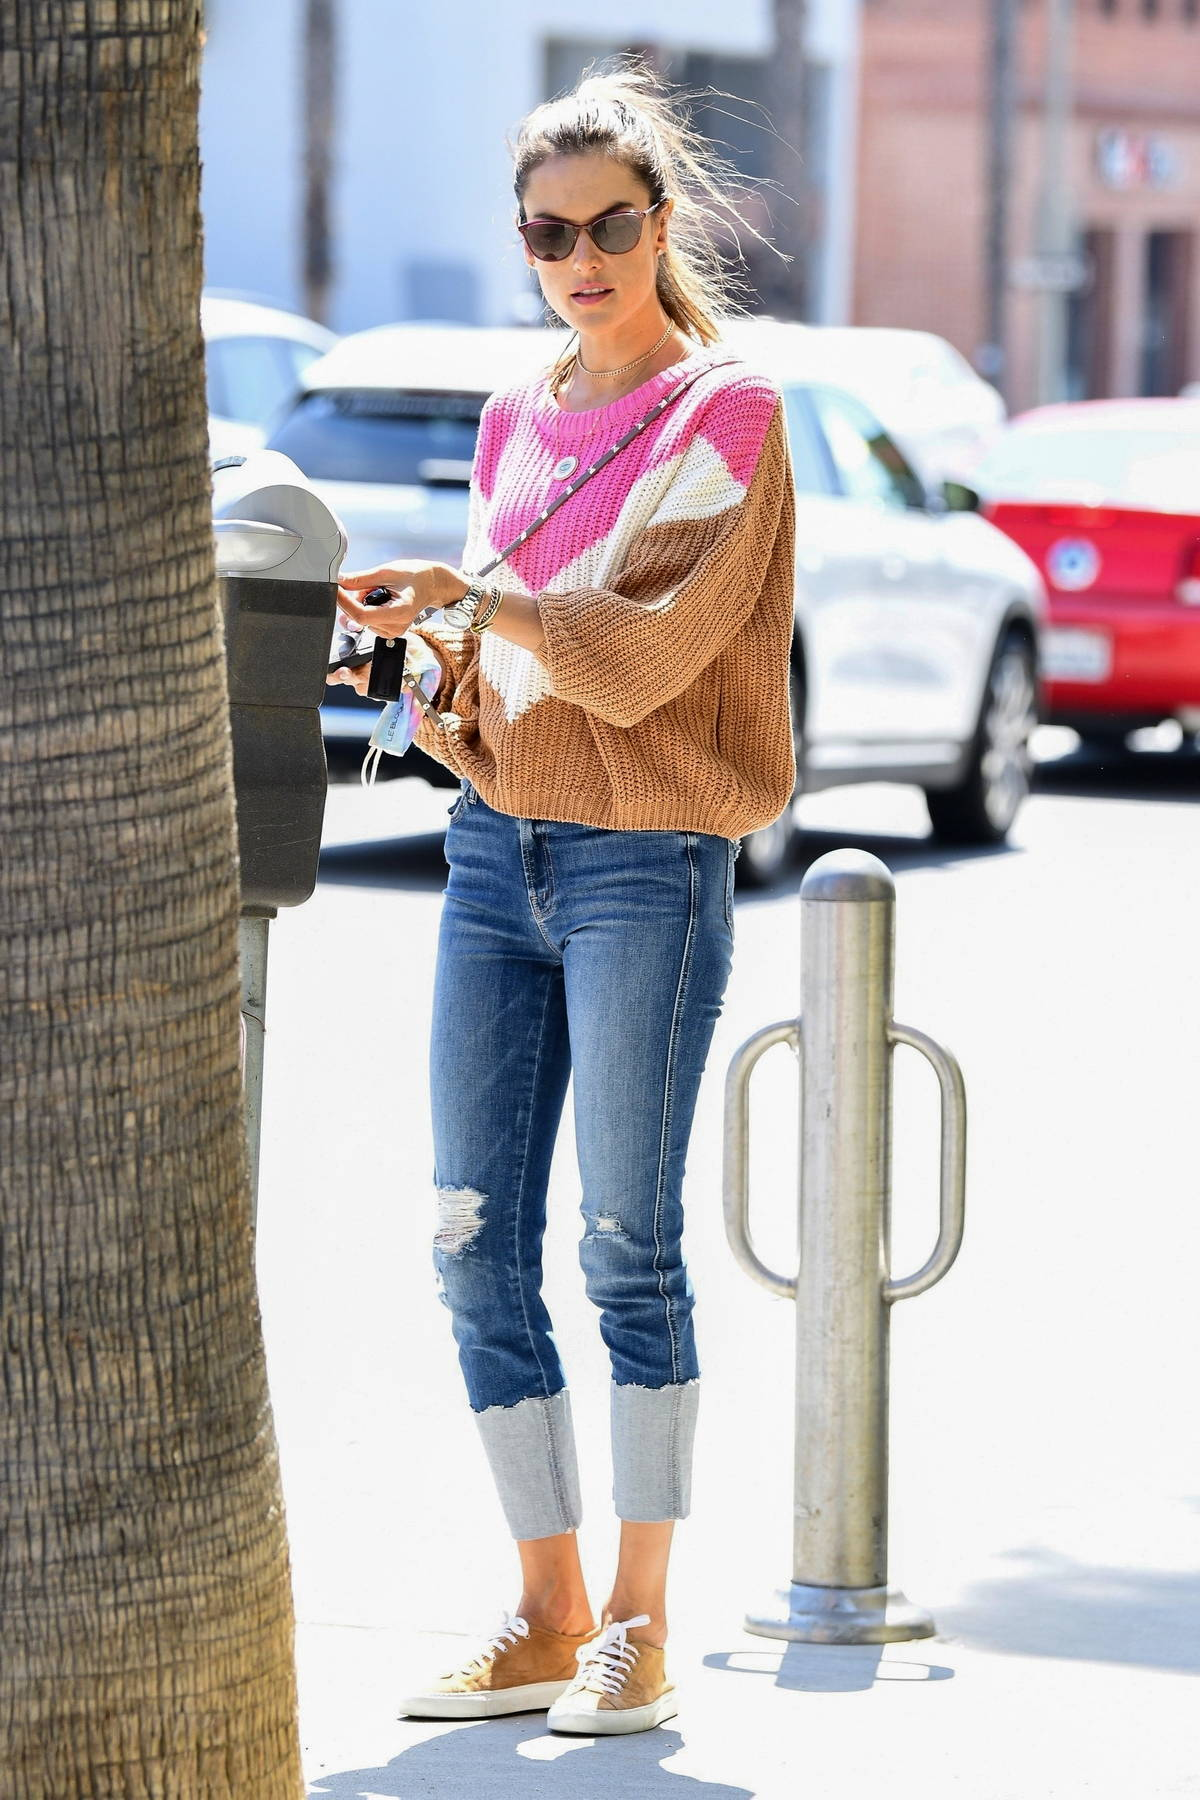 Alessandra Ambrosio rocks a colorful sweater with ripped jeans as she steps out for lunch in Santa Monica, California